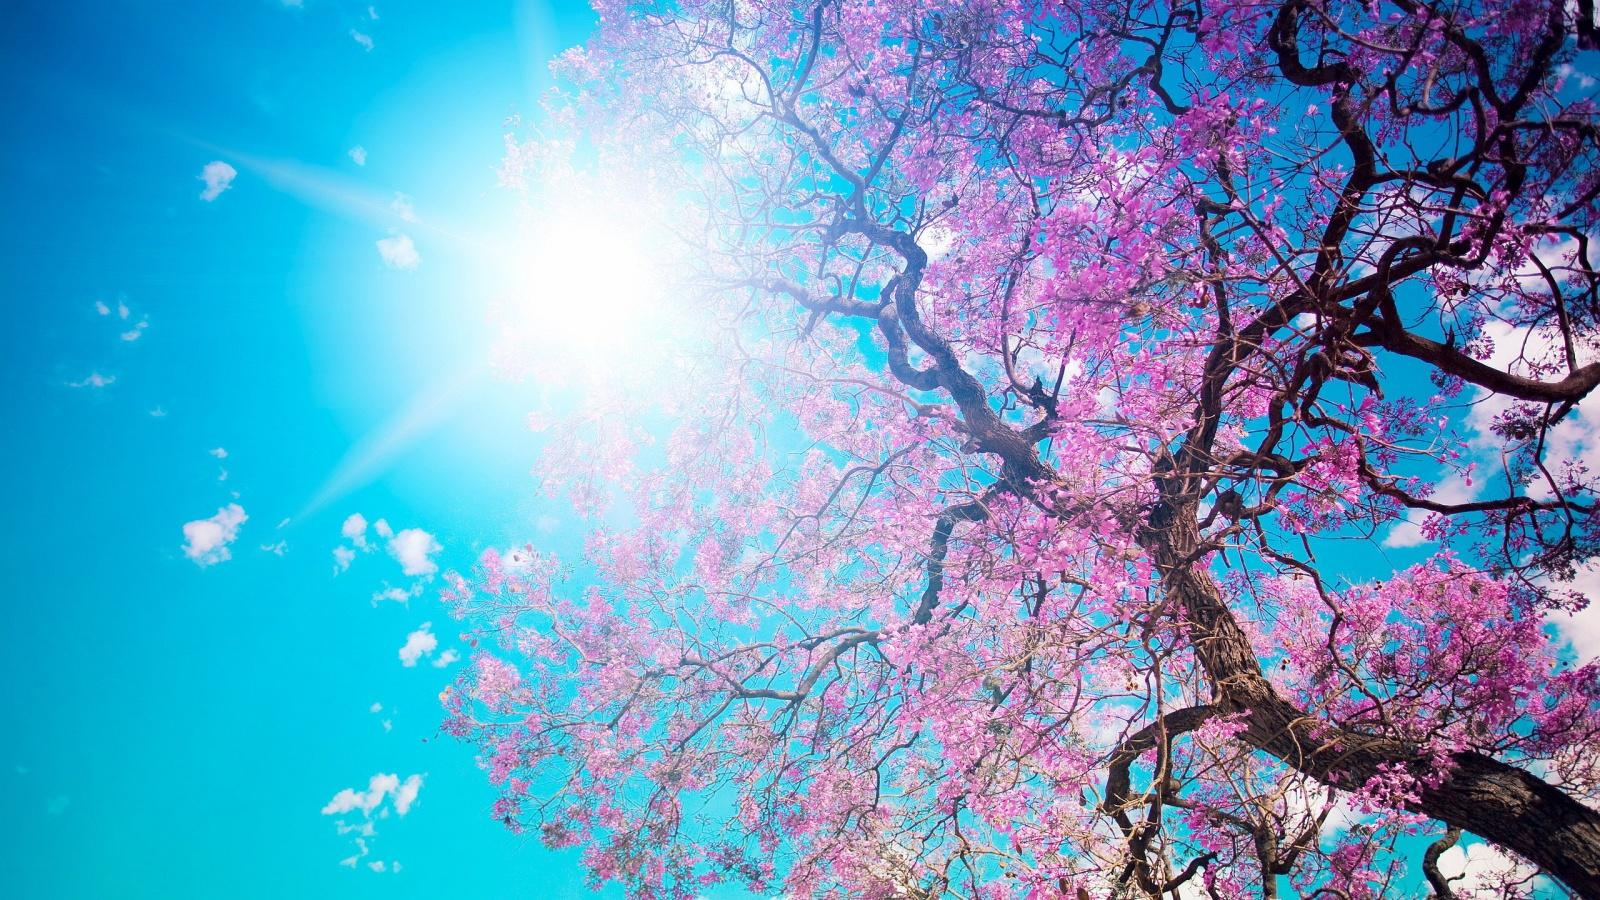 Spring Blossom Sunshine Wallpapers In 1600X900